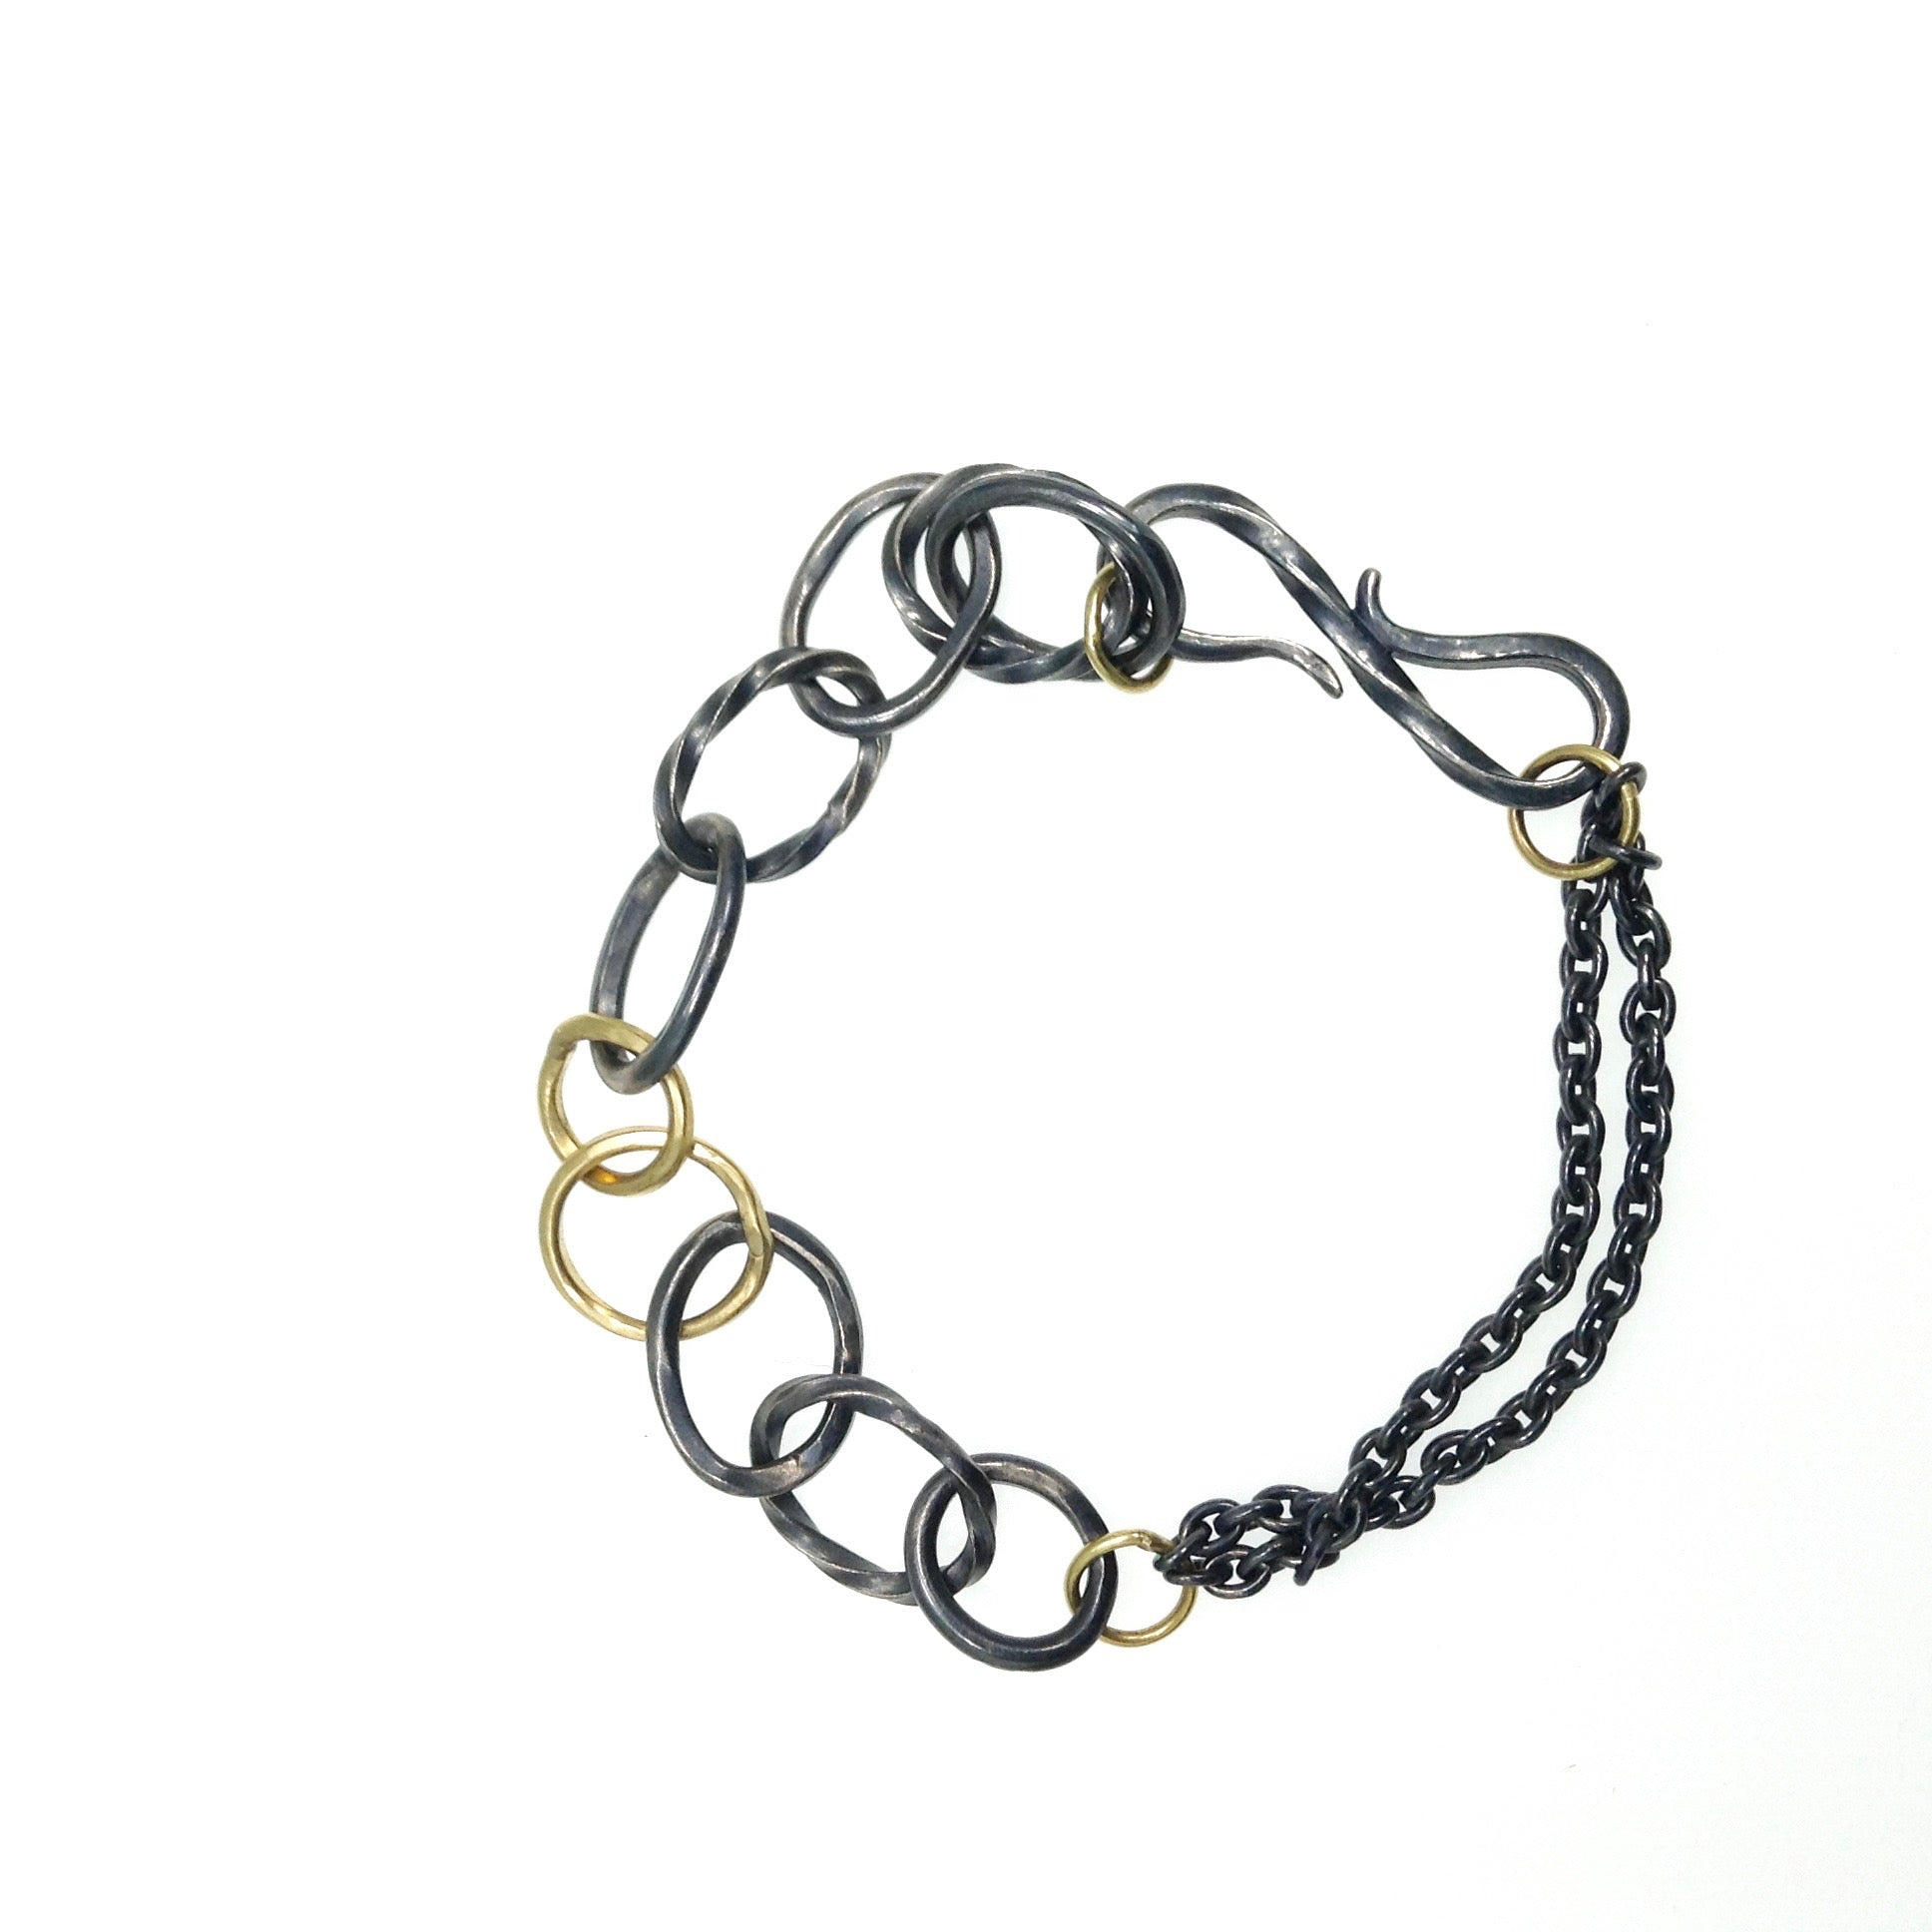 Oxidized Sterling Link Bracelet with 18k